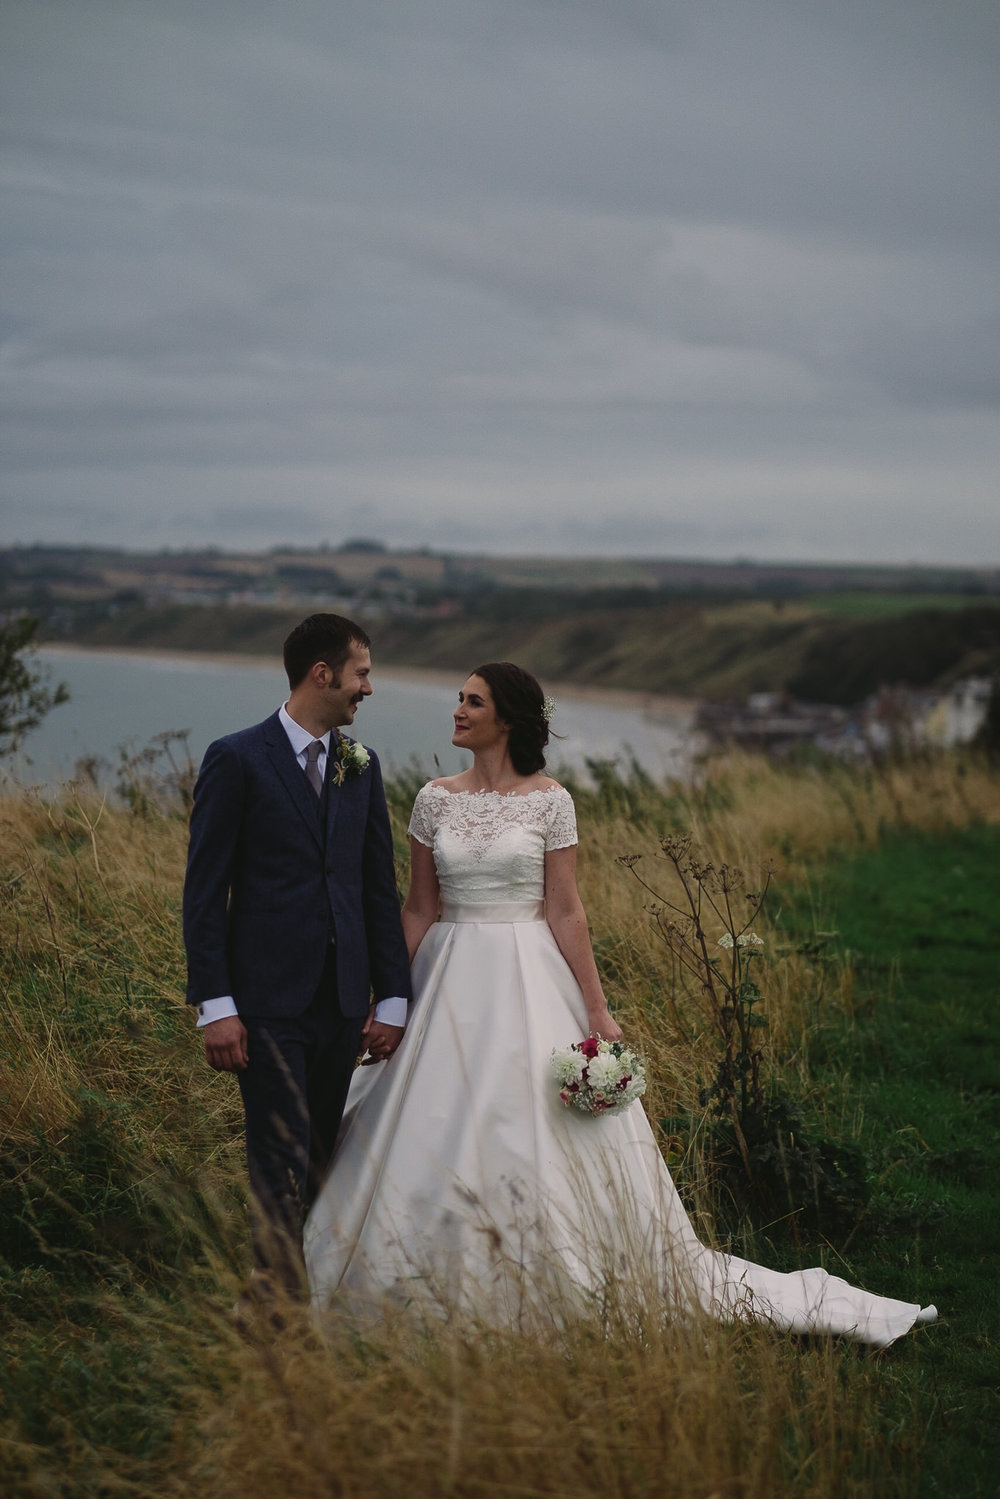 Katy & Tom on the clifftop overlooking the Yorkshire Coast by Barry Forshaw